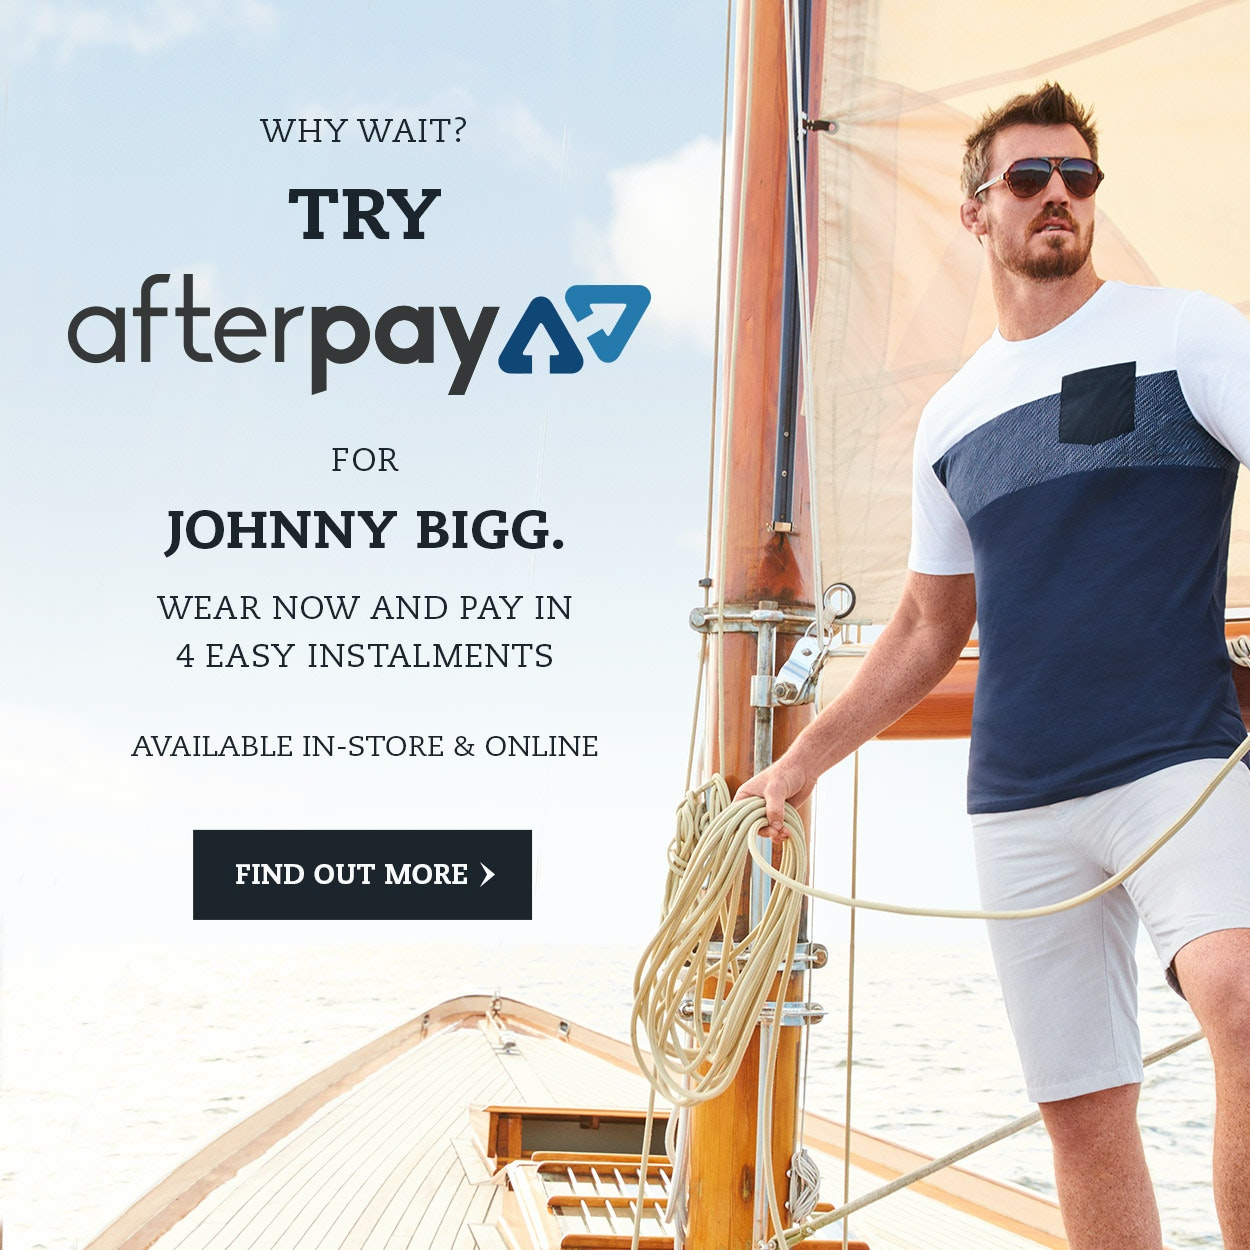 Find out about Afterpay -  shop now, pay later